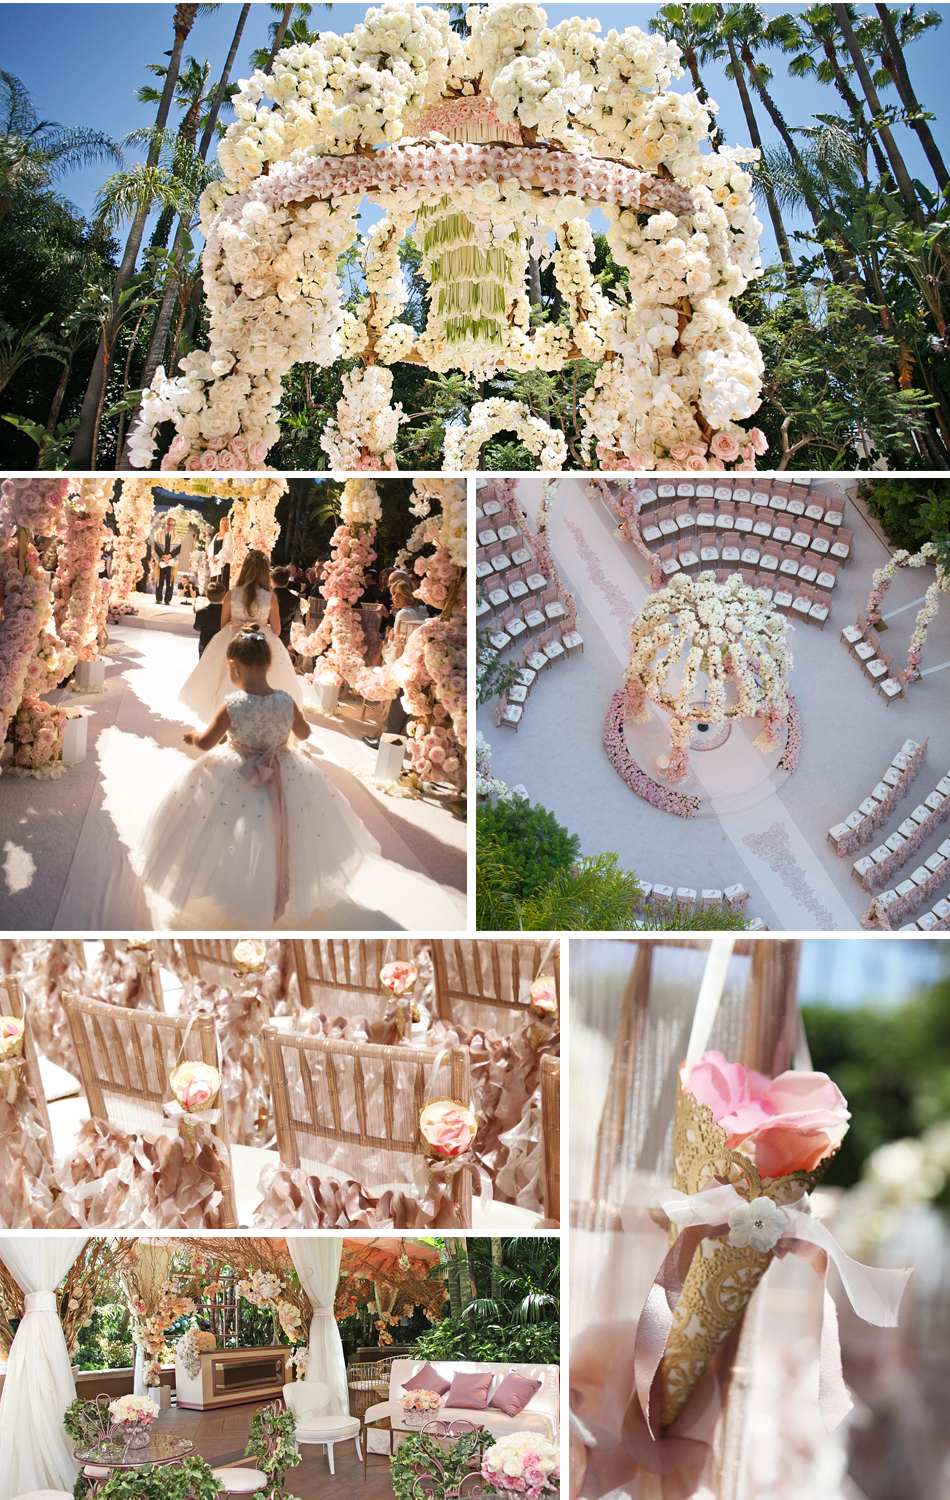 internationaleventcompany.com | International Event Company Los Angeles Wedding Planner and Designer | Weddings at The Four Seasons and Beverly Hills Hotel | Luxury Event Planners in Southern California _ (1).jpg